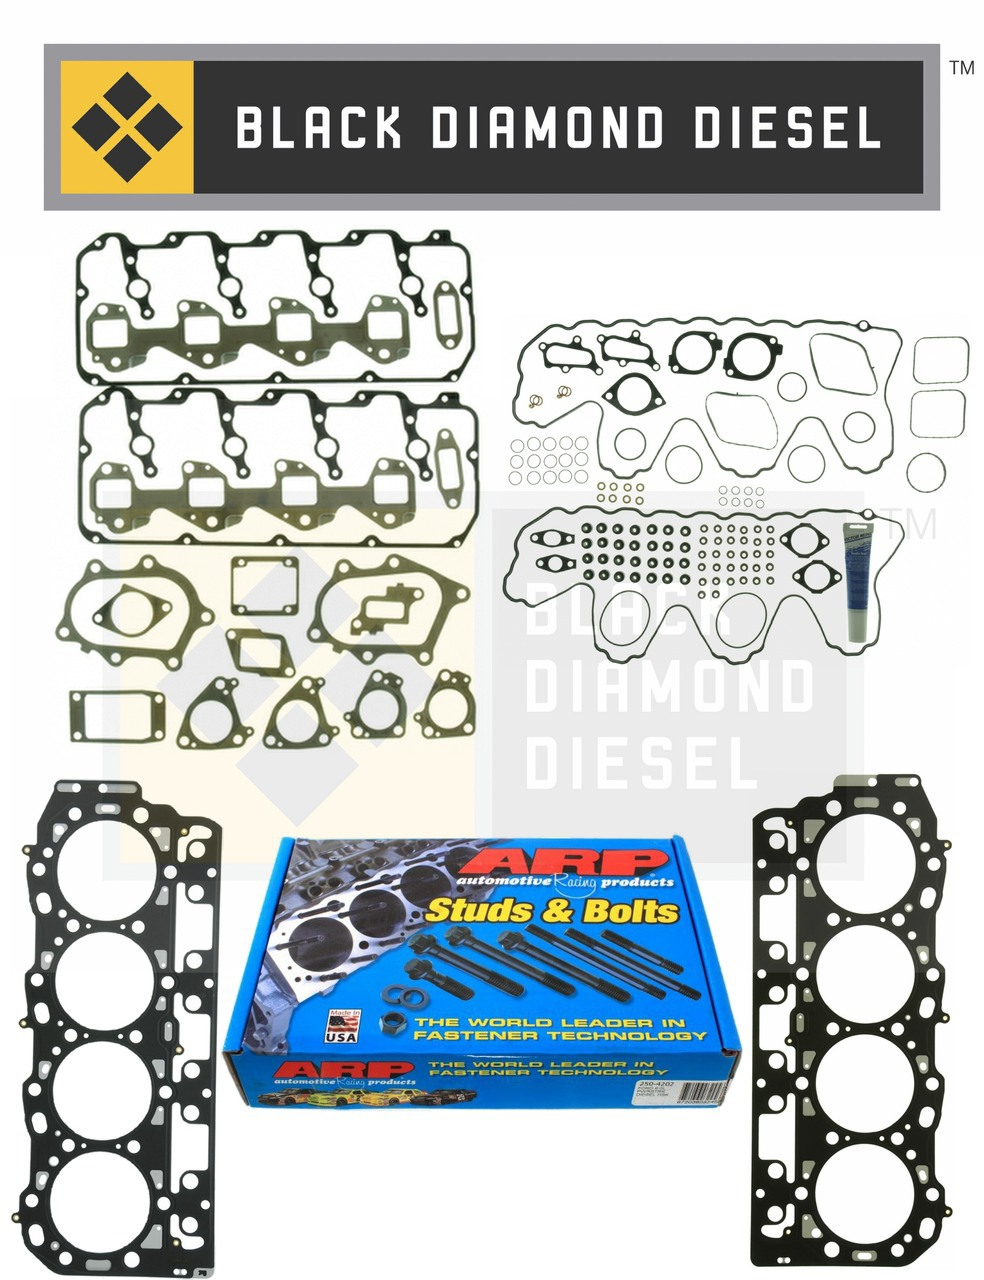 Duramax Fuel Filter Housing Rebuild Kit on fuel filter socket wrench kit, duramax filter head problem, duramax exhaust kit, duramax fuel primer rebuild kit, fuel filter housing o-ring kit, hand fuel pump seal kit, duramax filter housing seal kit, duramax fuel line kit, duramax fuel rail banjo gaskets, fuel filter head rebuild kit, duramax fuel valve, gm egr delete kit, duramax fuel bowl, duramax cat fuel filter kit, duramax exhaust filter removal, duramax fuel head rebuild, schwitzer s1 turbo rebuild kit, duramax fuel pump rebuild kit, duramax lly rebuild kit, diesel fuel water separator kit,